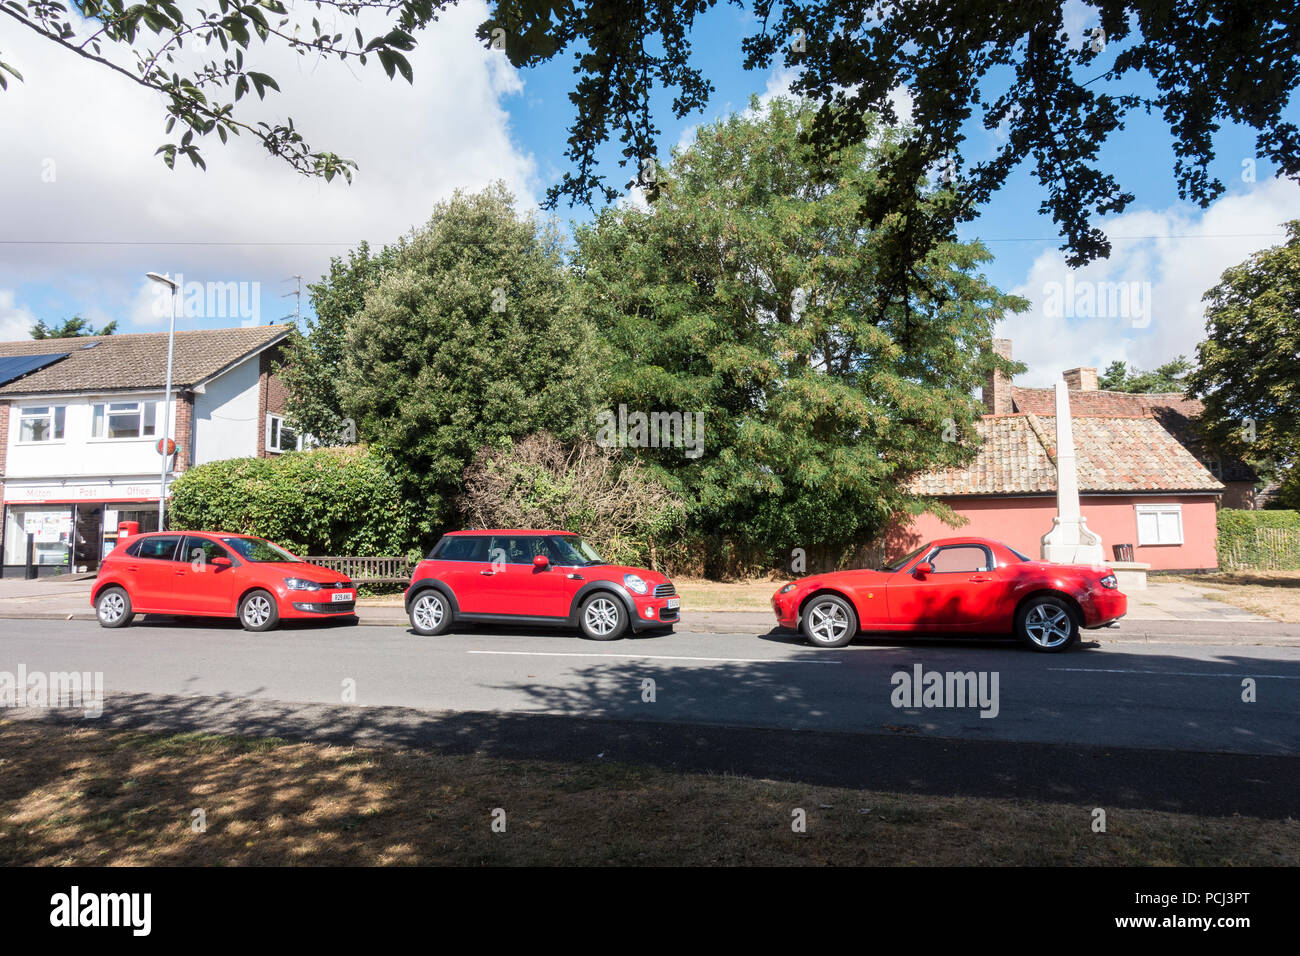 three-red-cars-parked-on-road-PCJ3PT.jpg